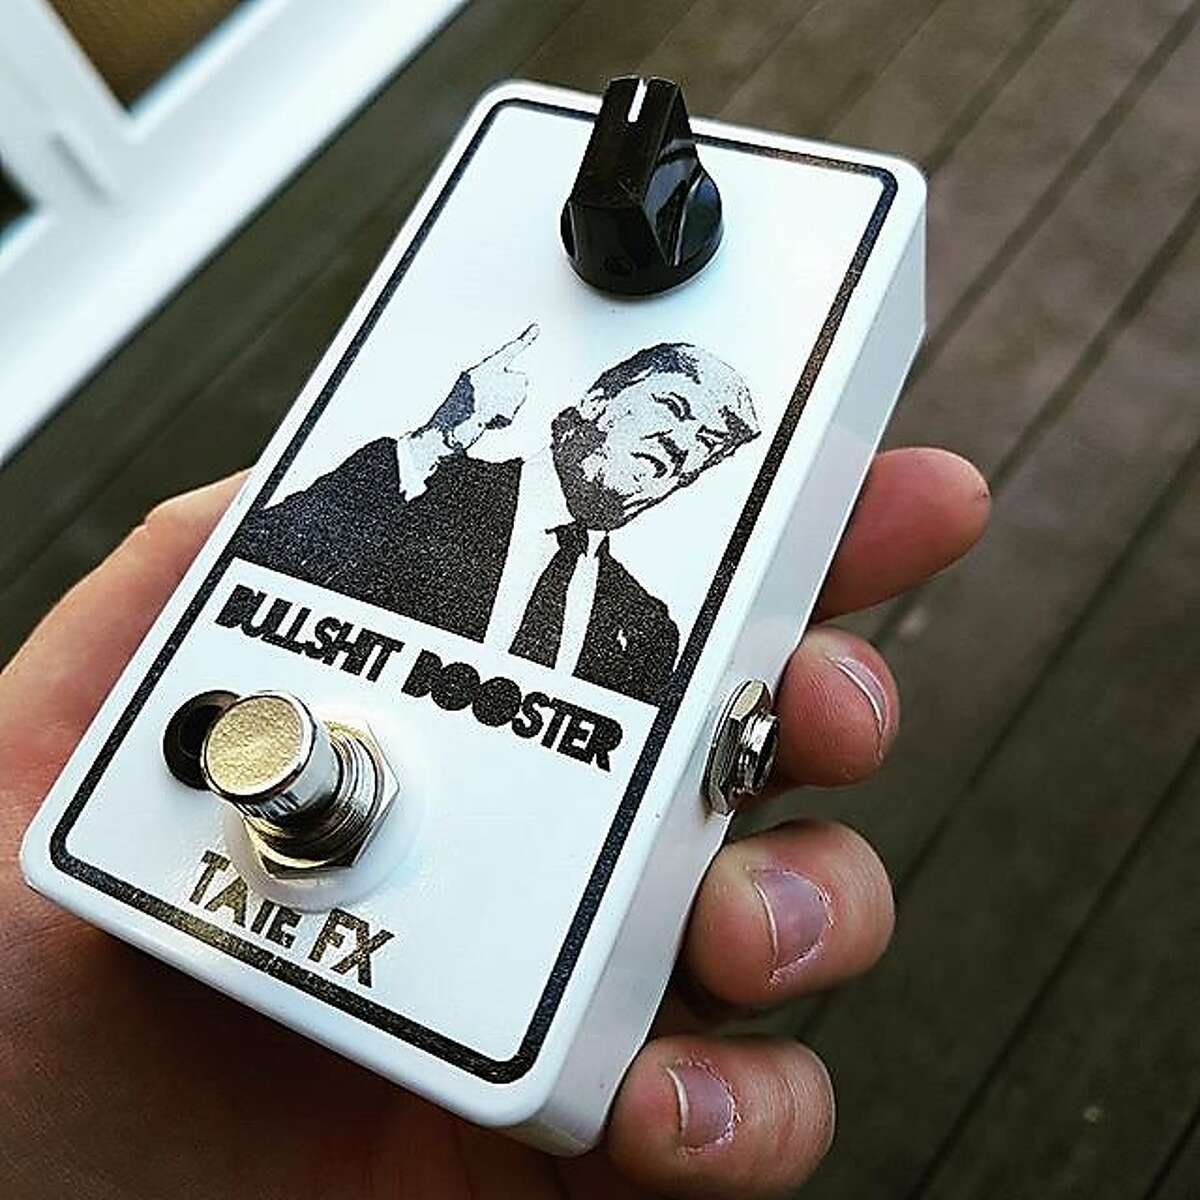 Bullshit Booster by Tate FX of London, England�(from the exhibit �PedalCulture: The Guitar Effects Pedal as Cultural Artifact� at San Francisco State University)